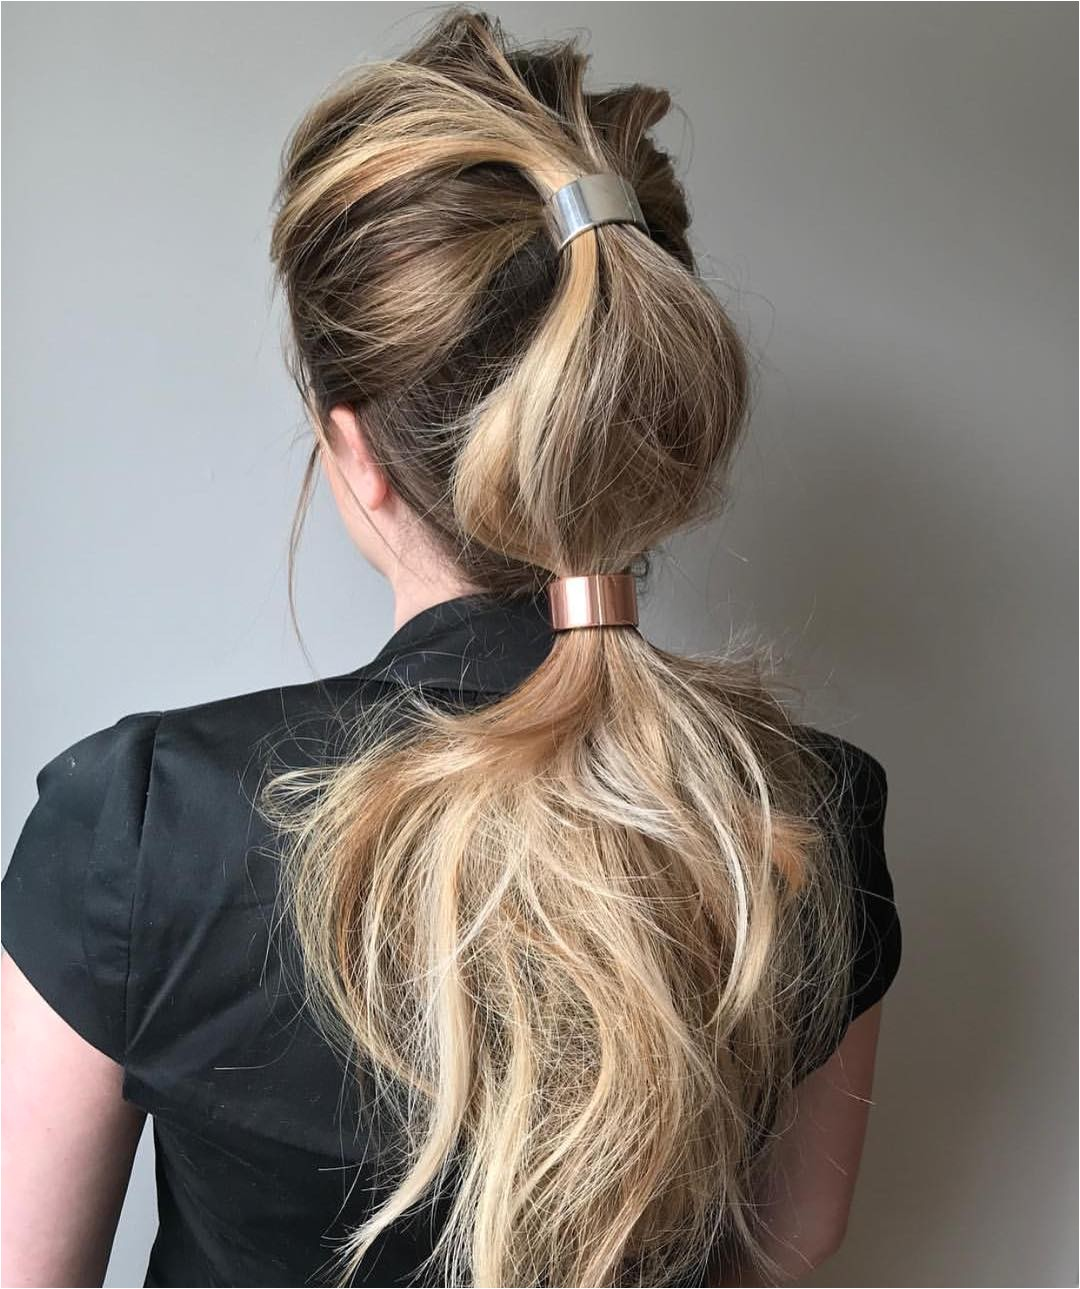 tren st ponytail hairstyles long hair easy ponytails